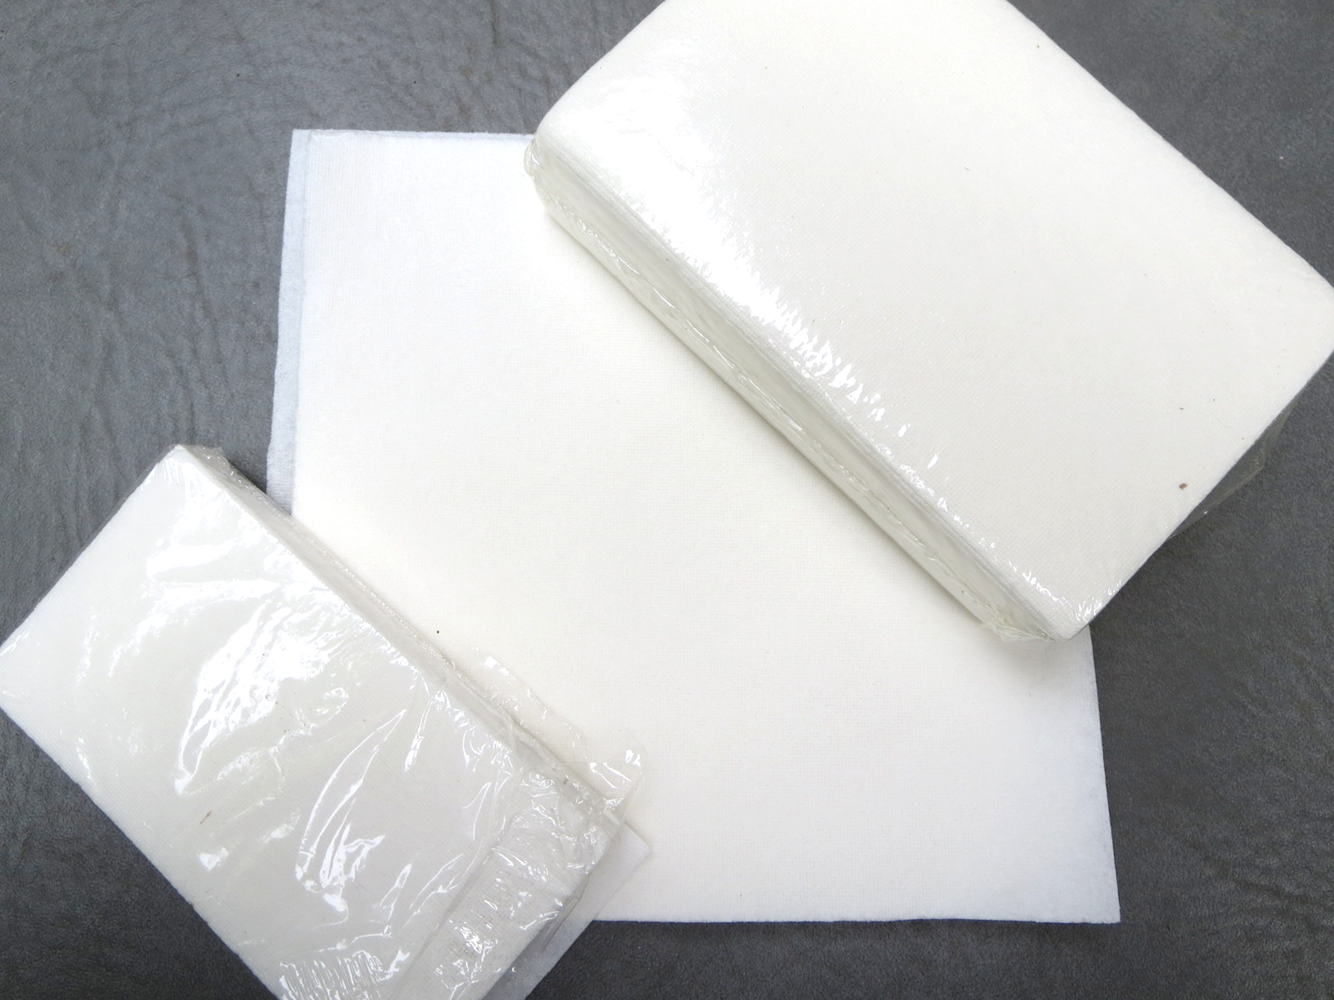 #02-01282CG07 DriMop® Medical Liquid Absorber/Fluid Solidifying Laminated Paper Sheets - 6` x 6`